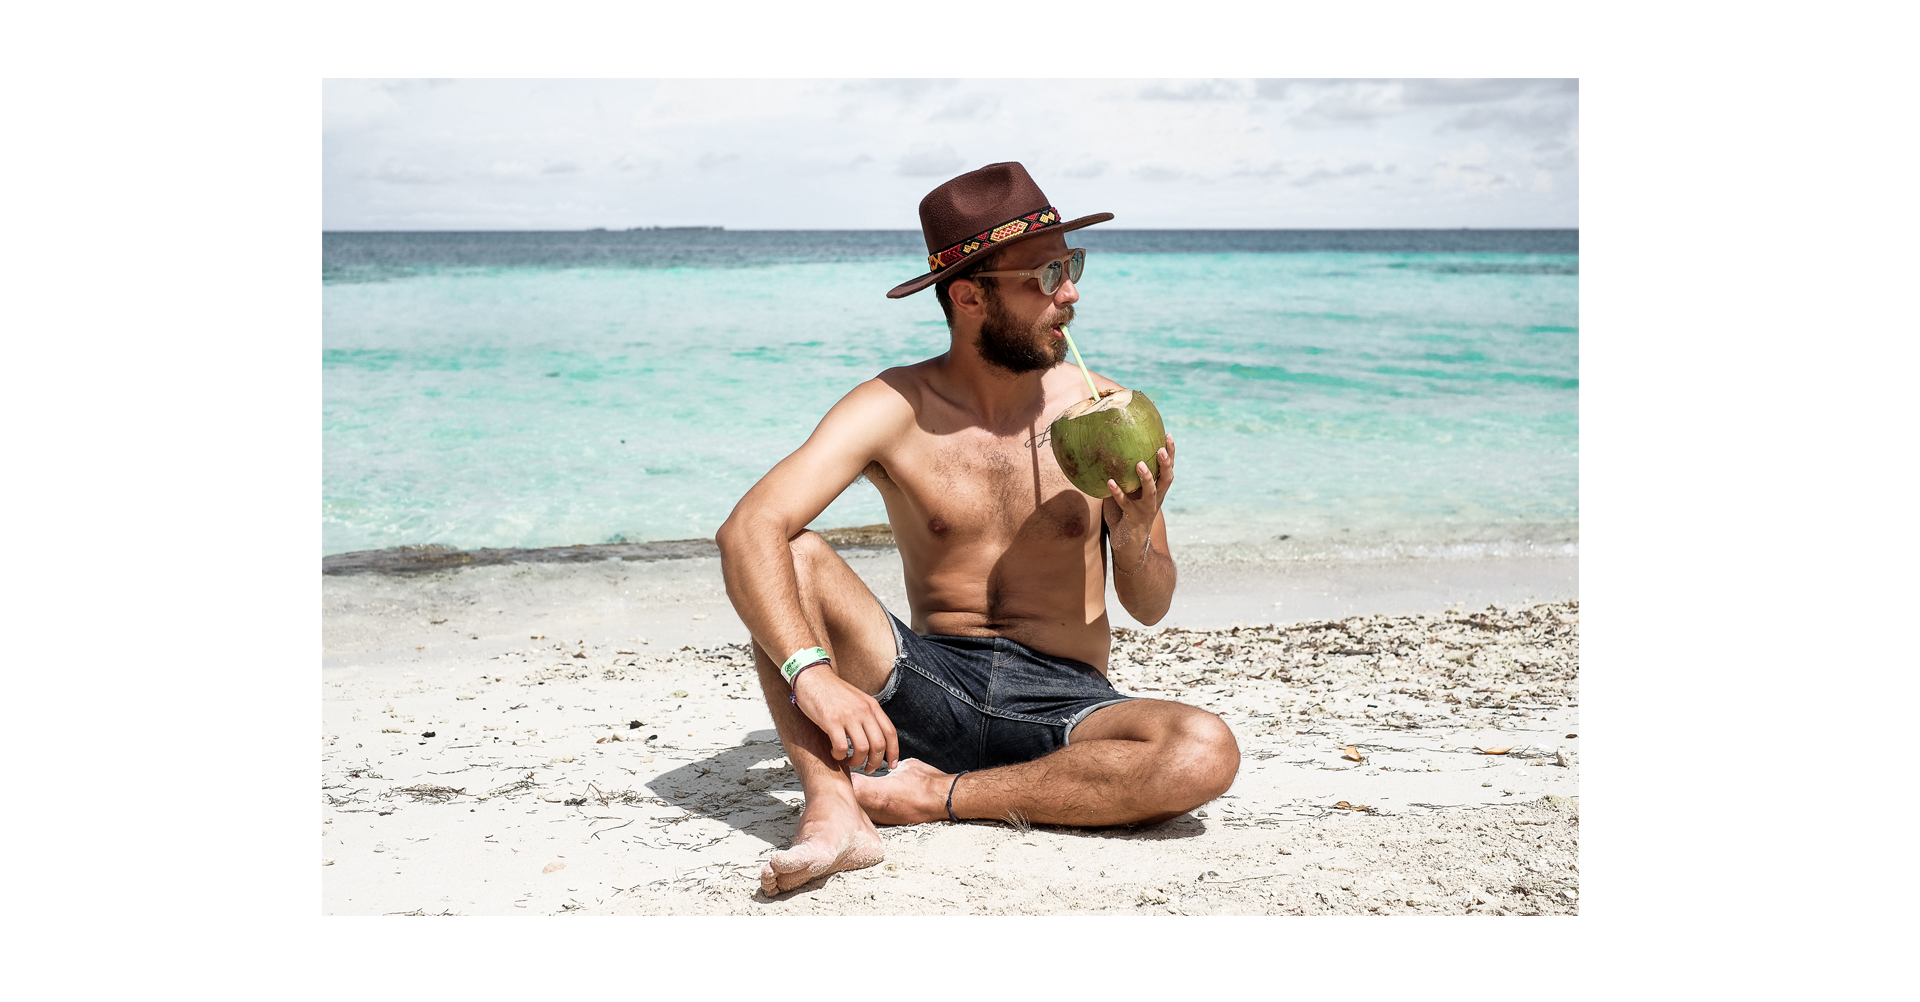 basilio on the beach coconut hat man